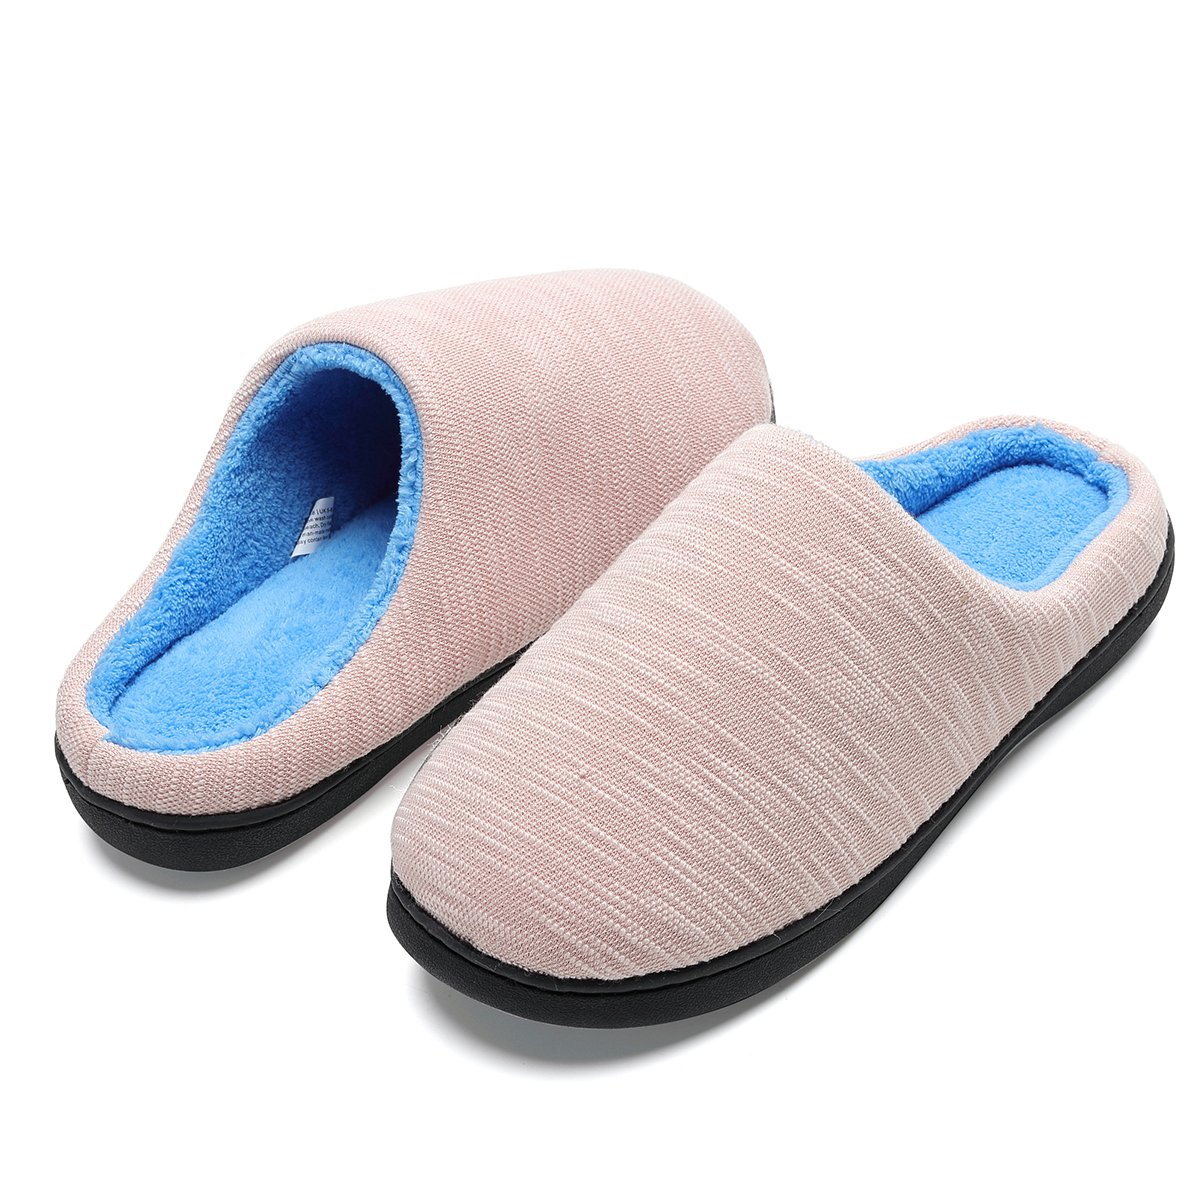 CocoHome CocoHome , B000W069PS Rose Chaussons Femme Rose Bonbon 7017d80 - latesttechnology.space